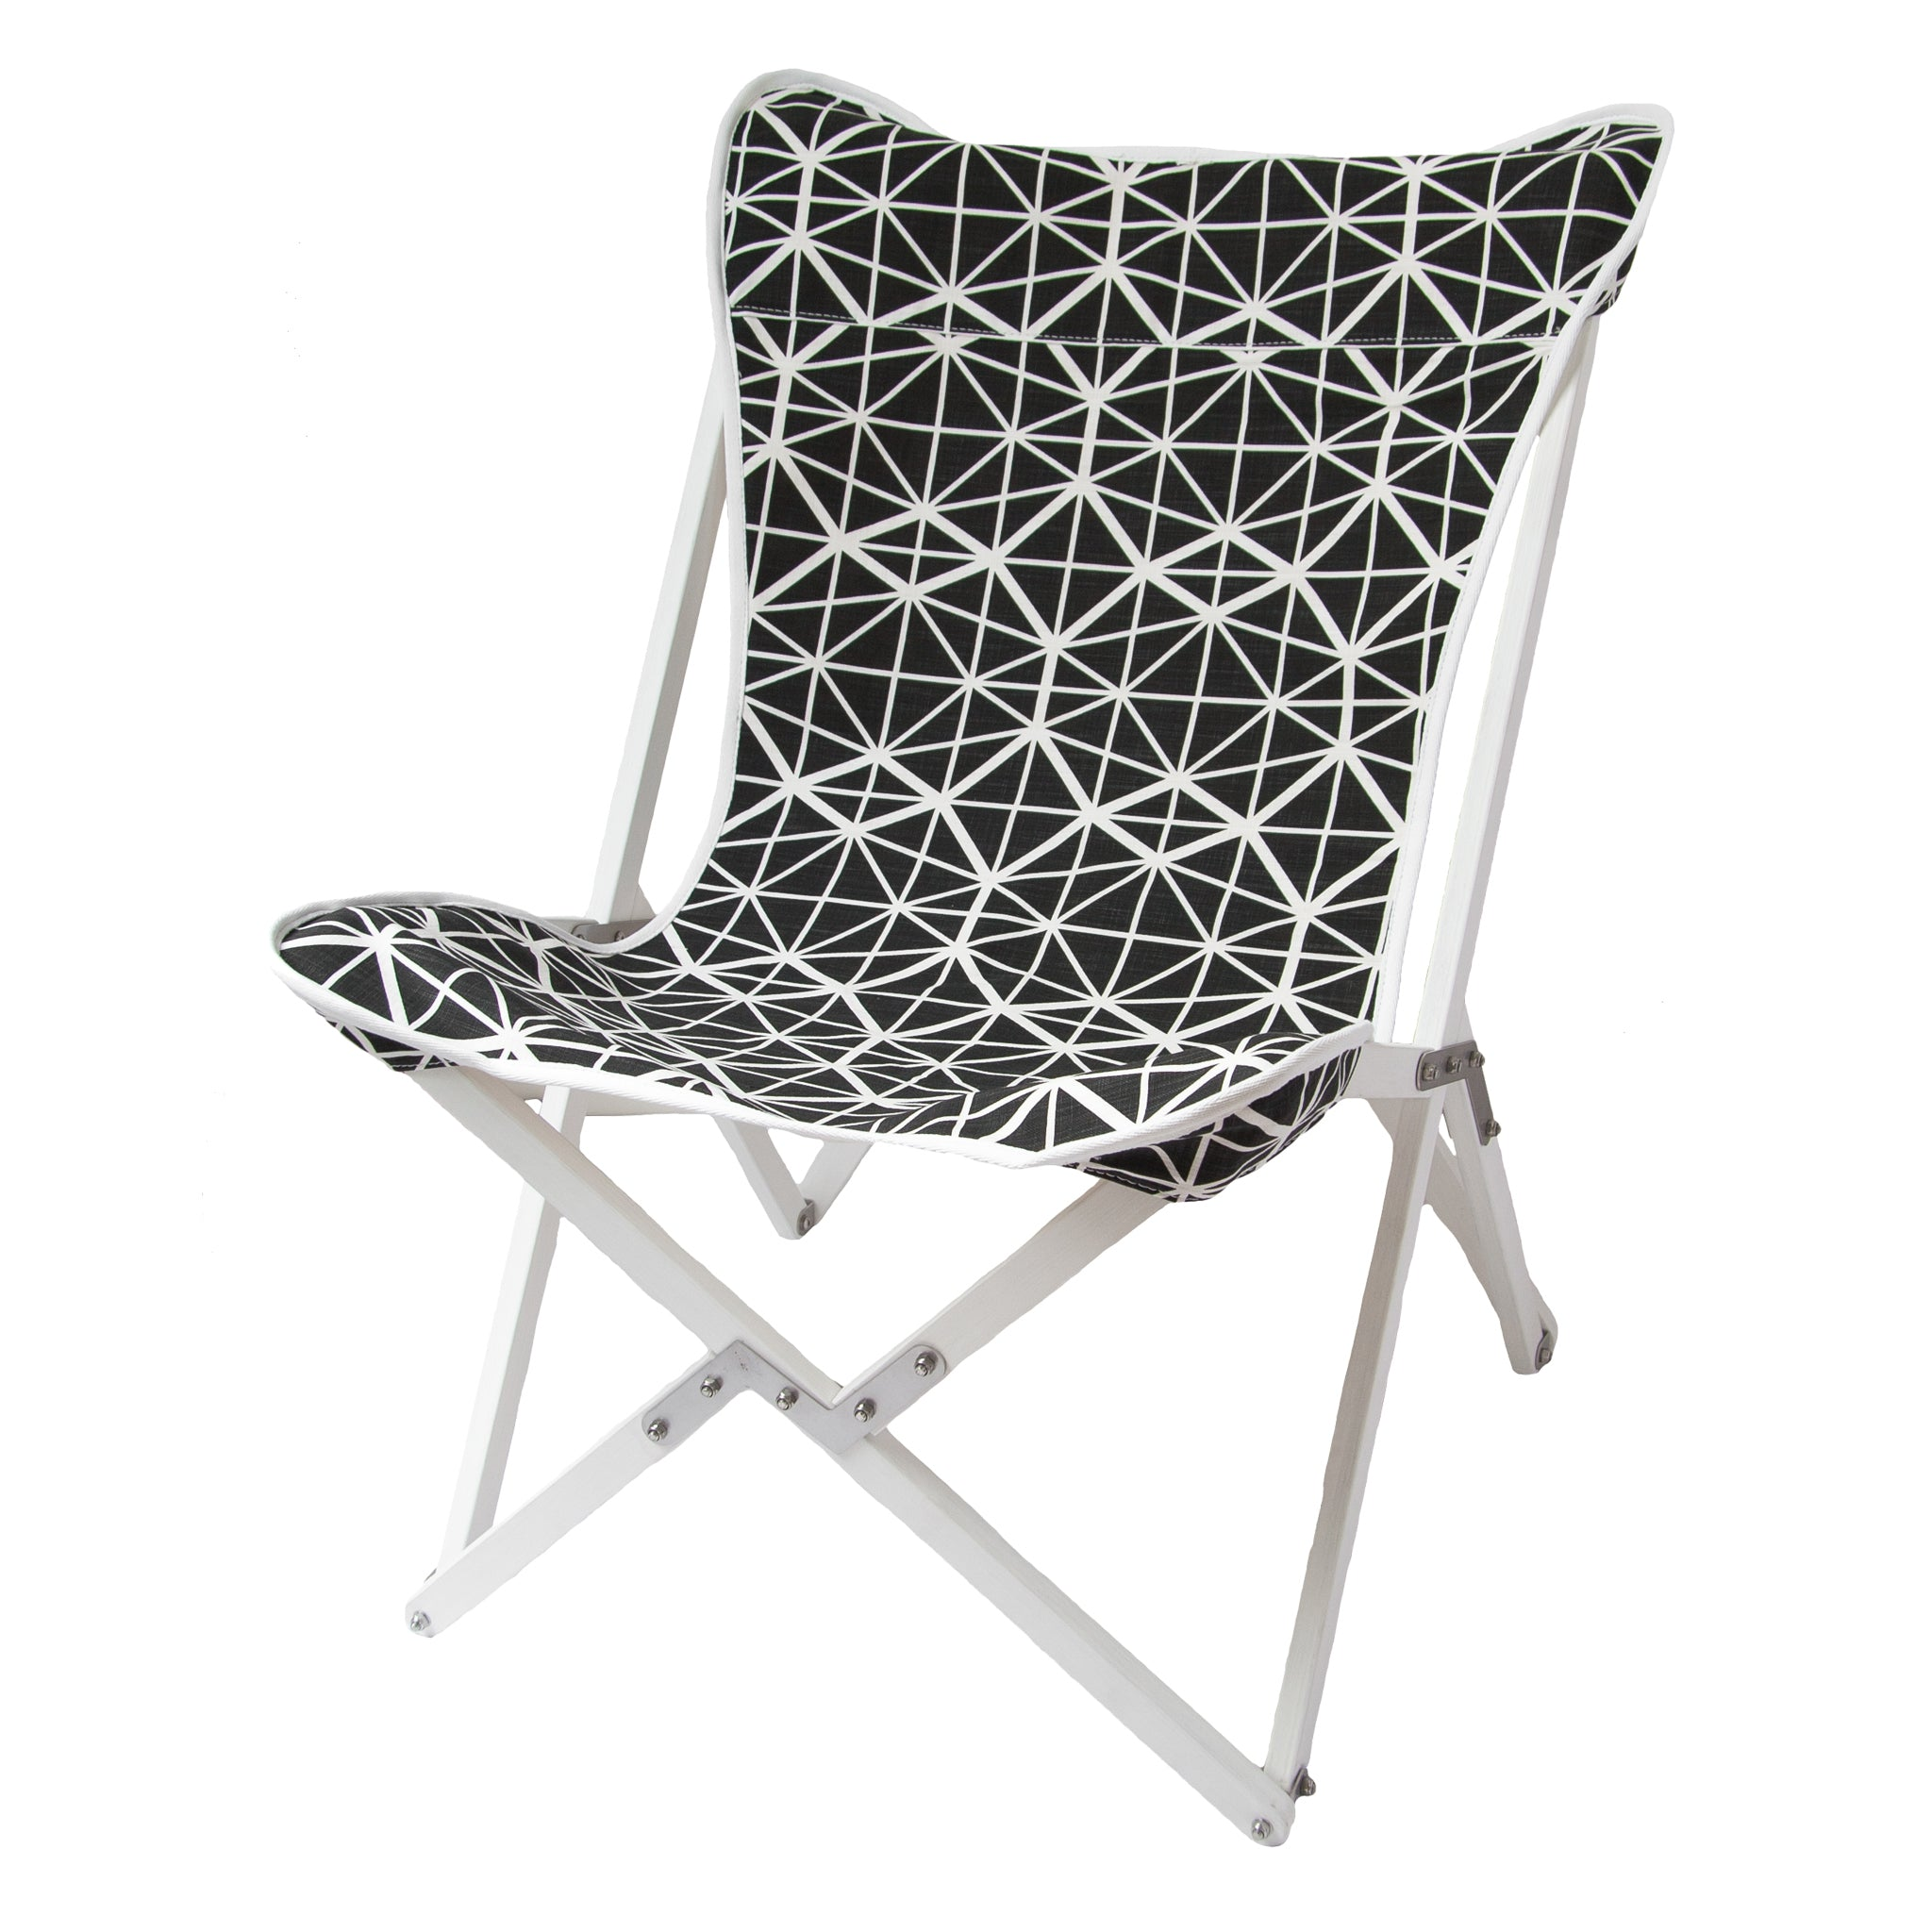 Safari Journal / Blog by Safari Fusion | Tripolina chair | Tripolina chair (facet) by Safari Fusion